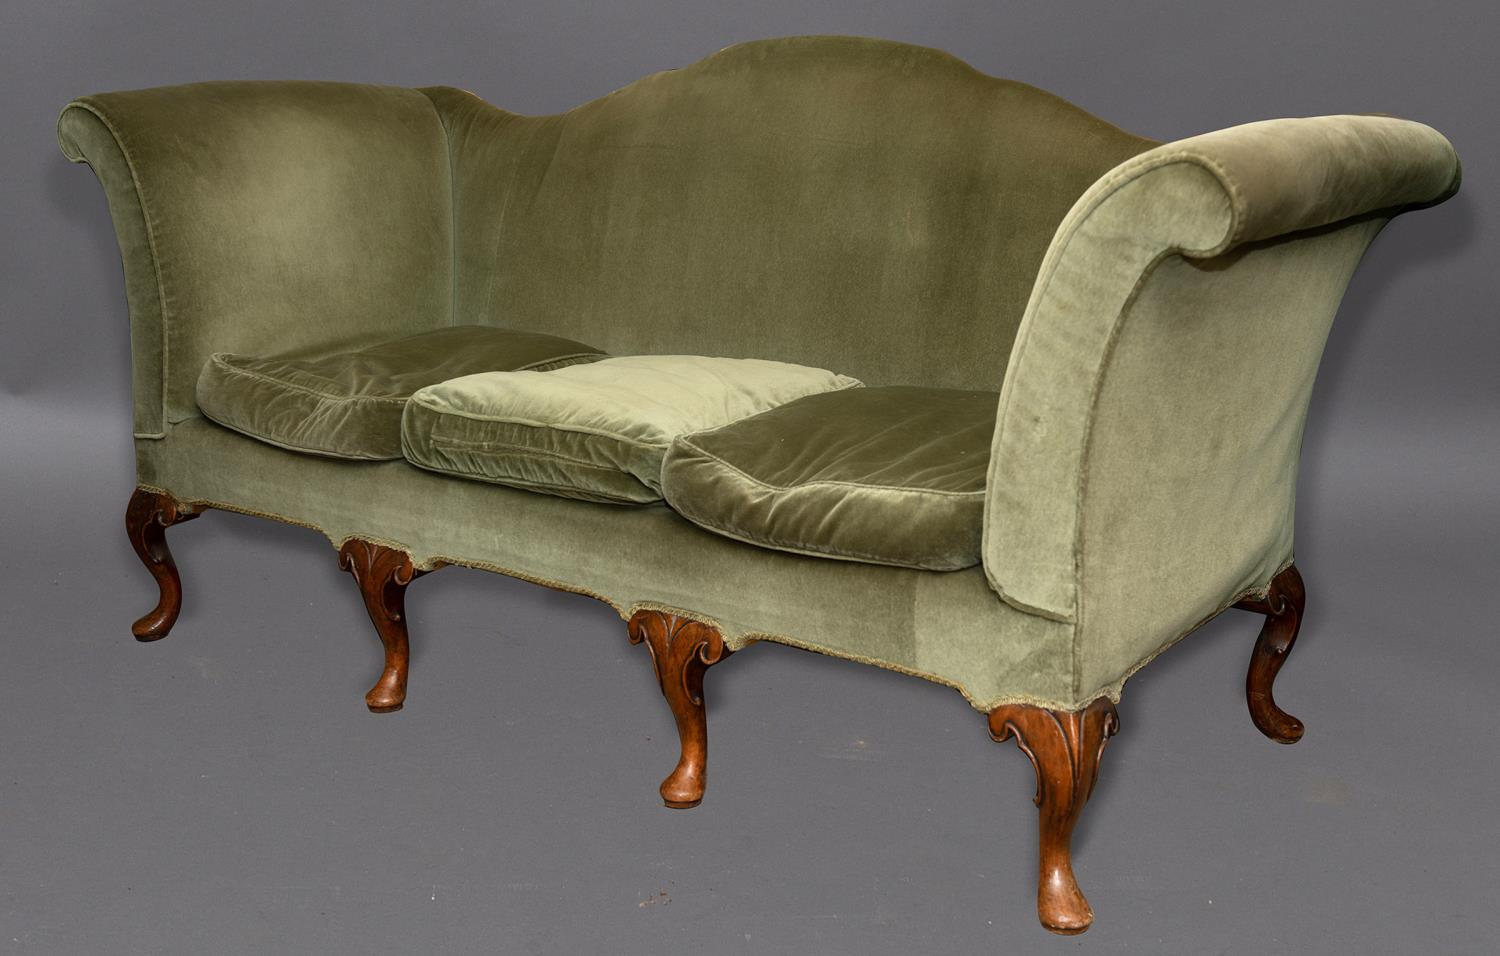 A QUEEN ANNE STYLE THREE SEATER SETTEE. The settee upholstered in green velvet with an arched and